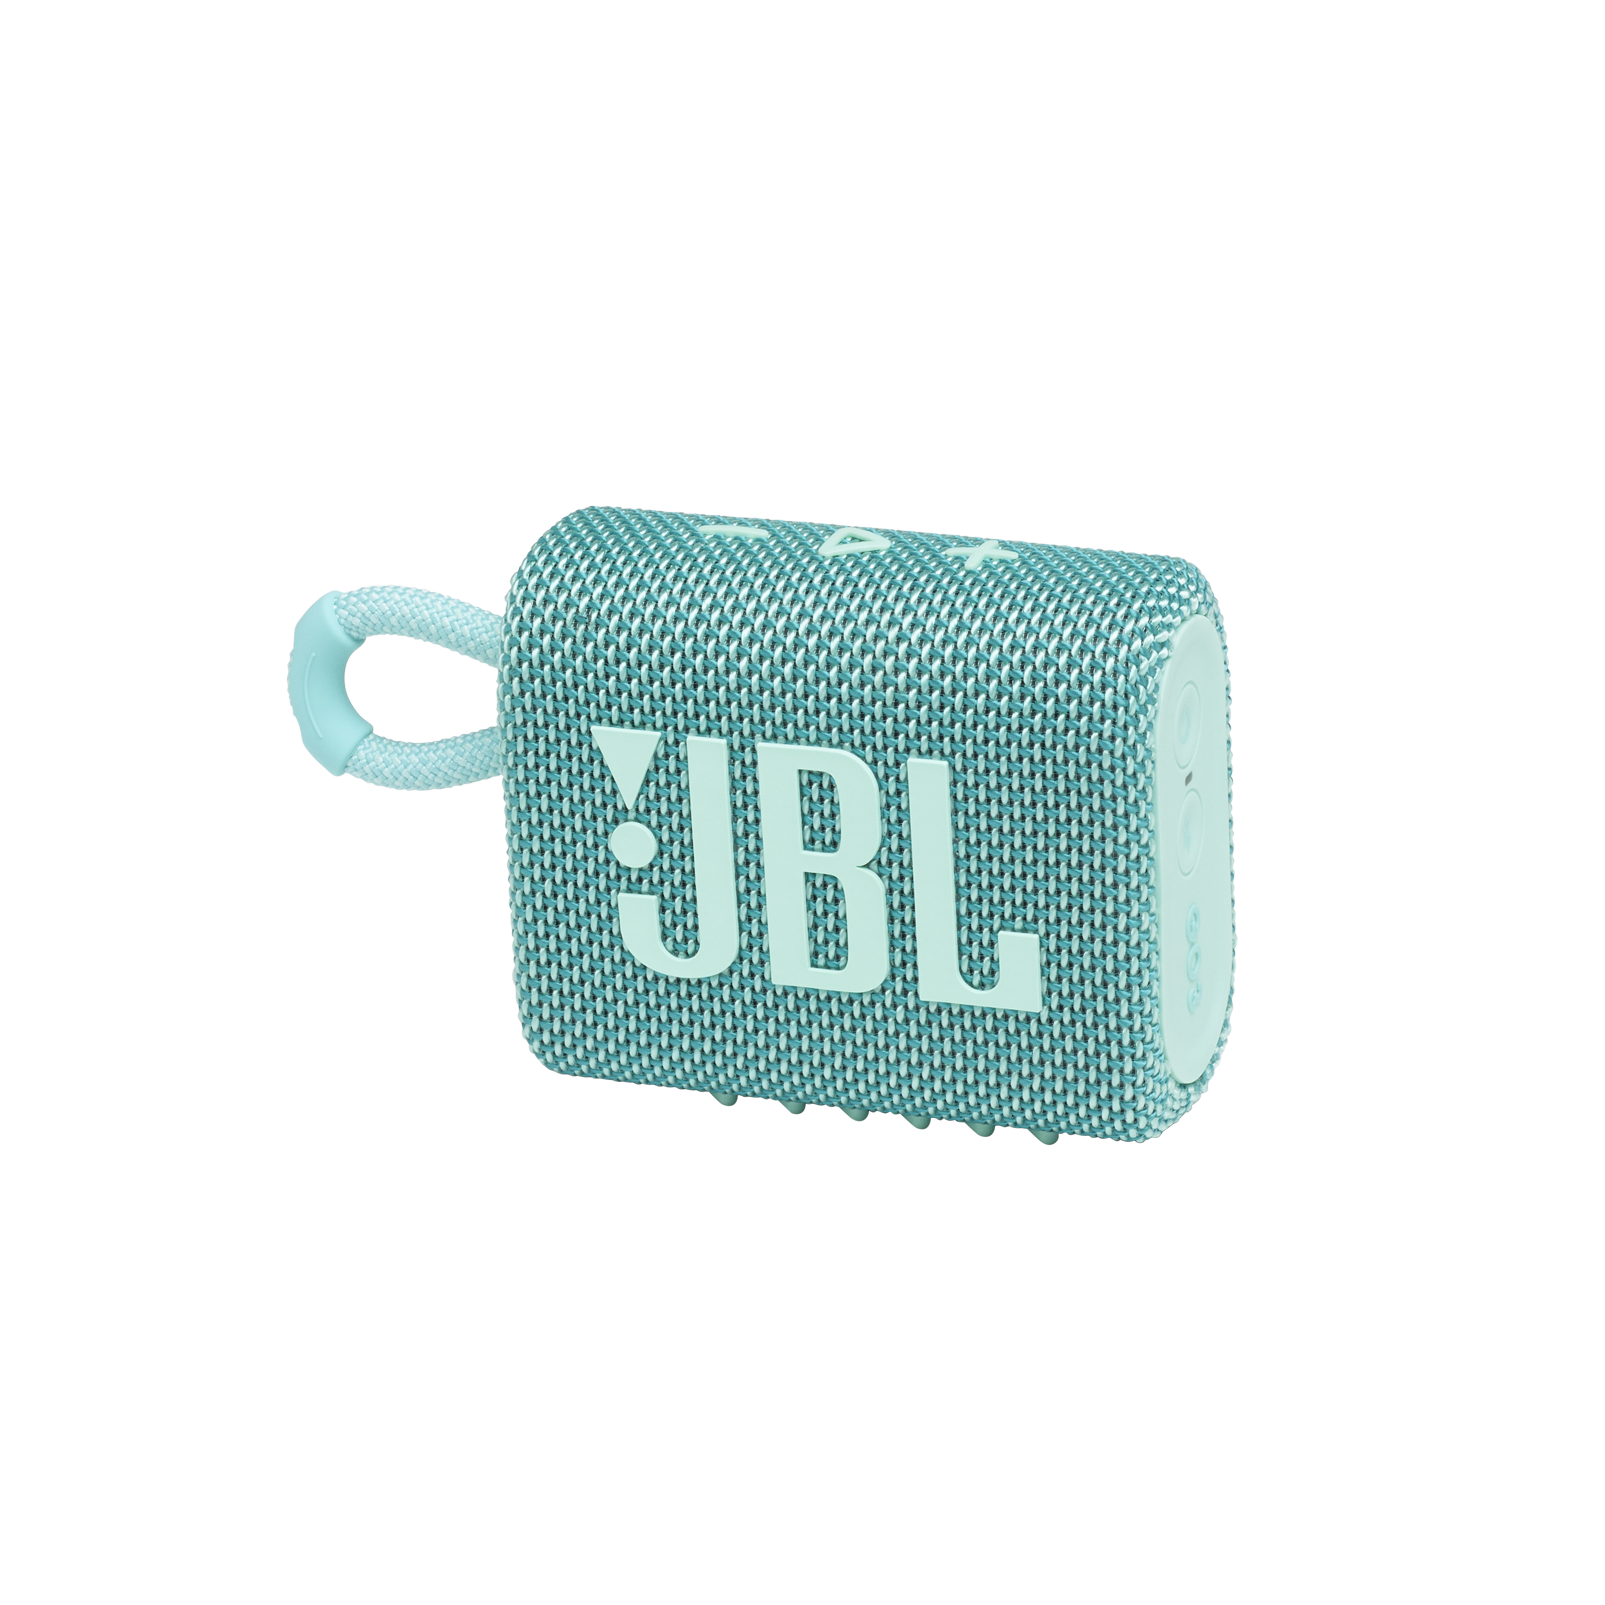 JBL GO 3 - Teal - Portable Waterproof Speaker - Hero